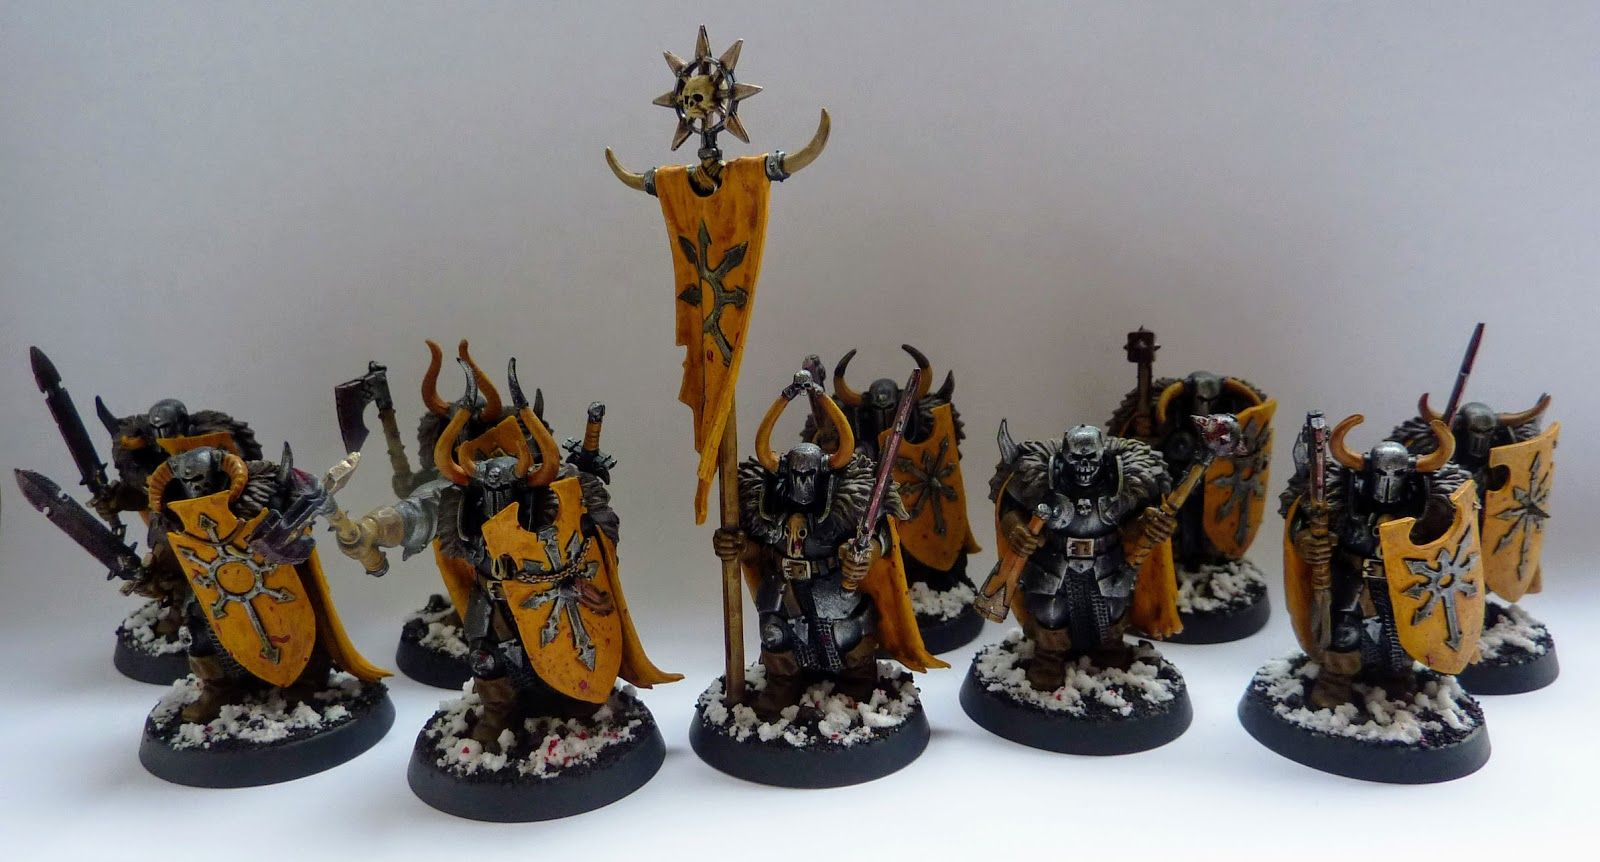 Chaos Chariot Slaves to Darkness Warhammer Age of Sigmar